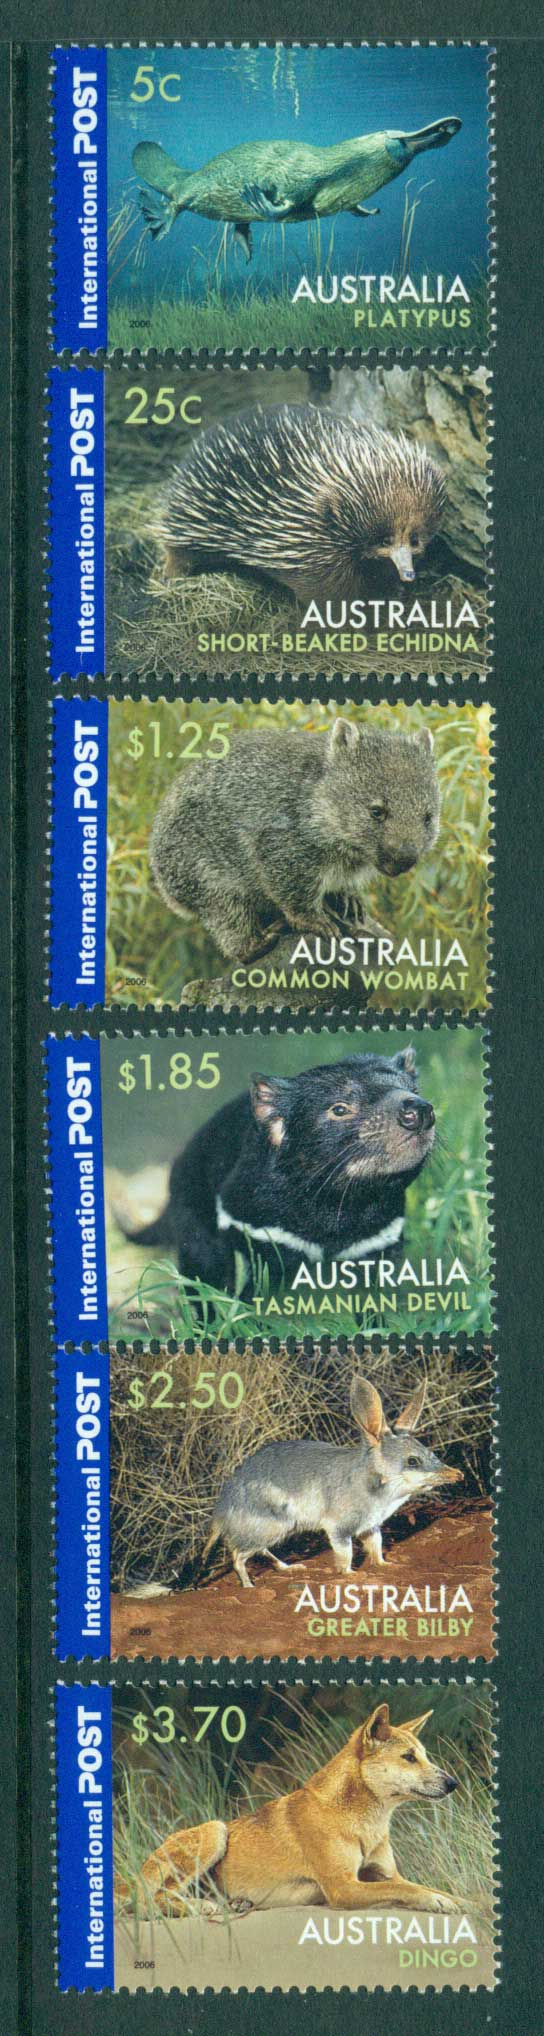 Australia 2006 Australian Wildlife Internationals MUH Lot29823